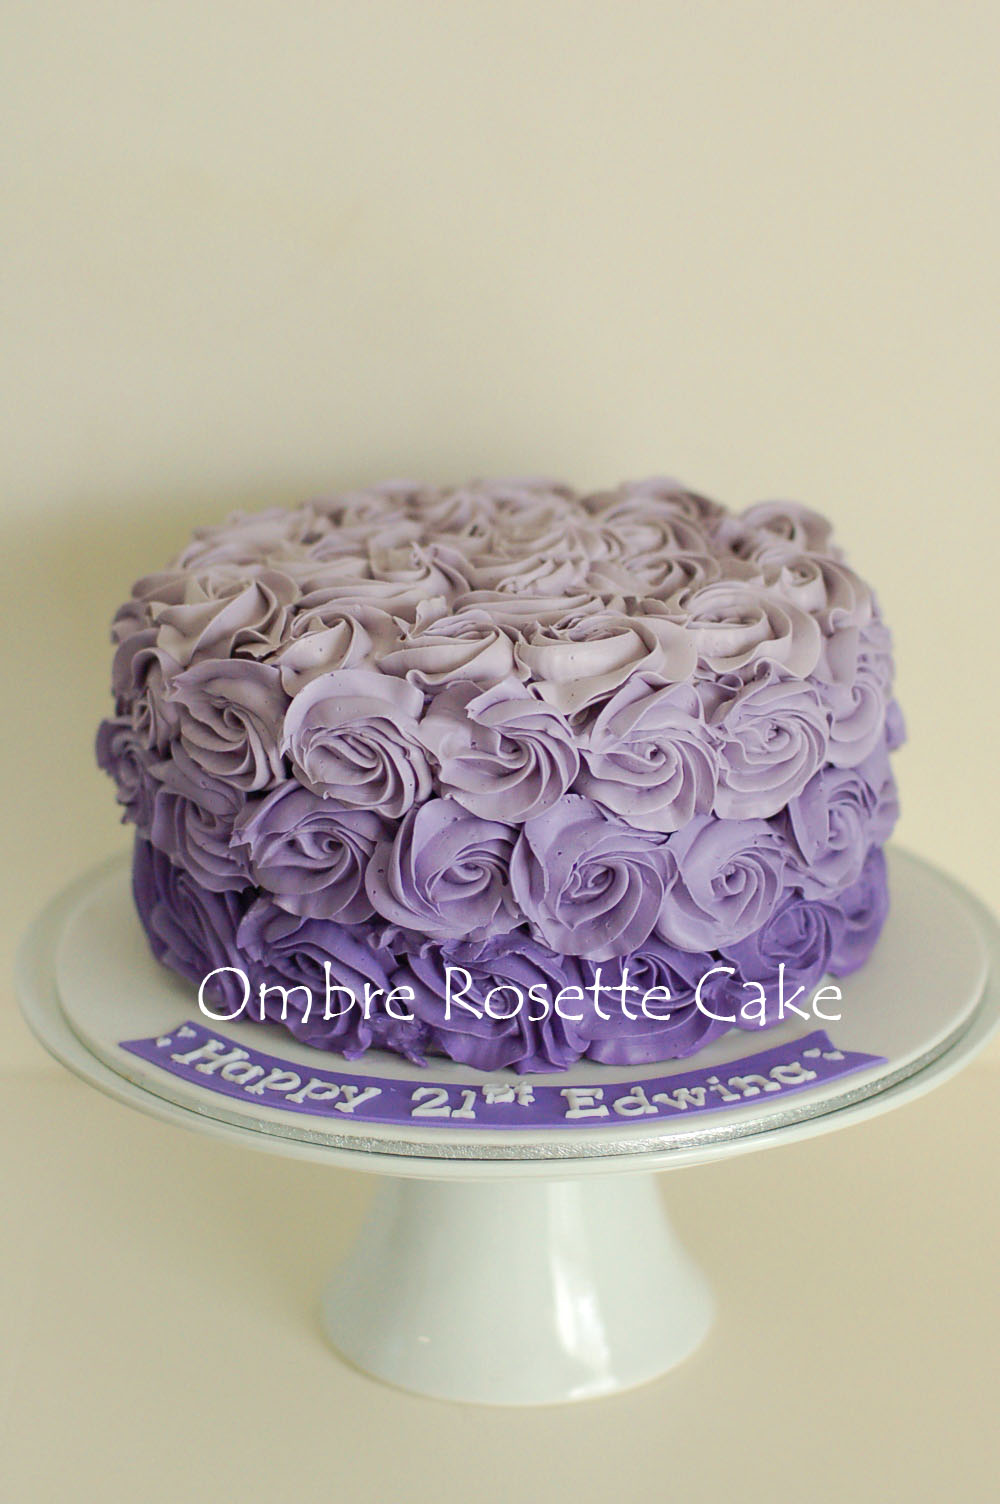 Ombre Wedding Cakes + Desserts - The Knot